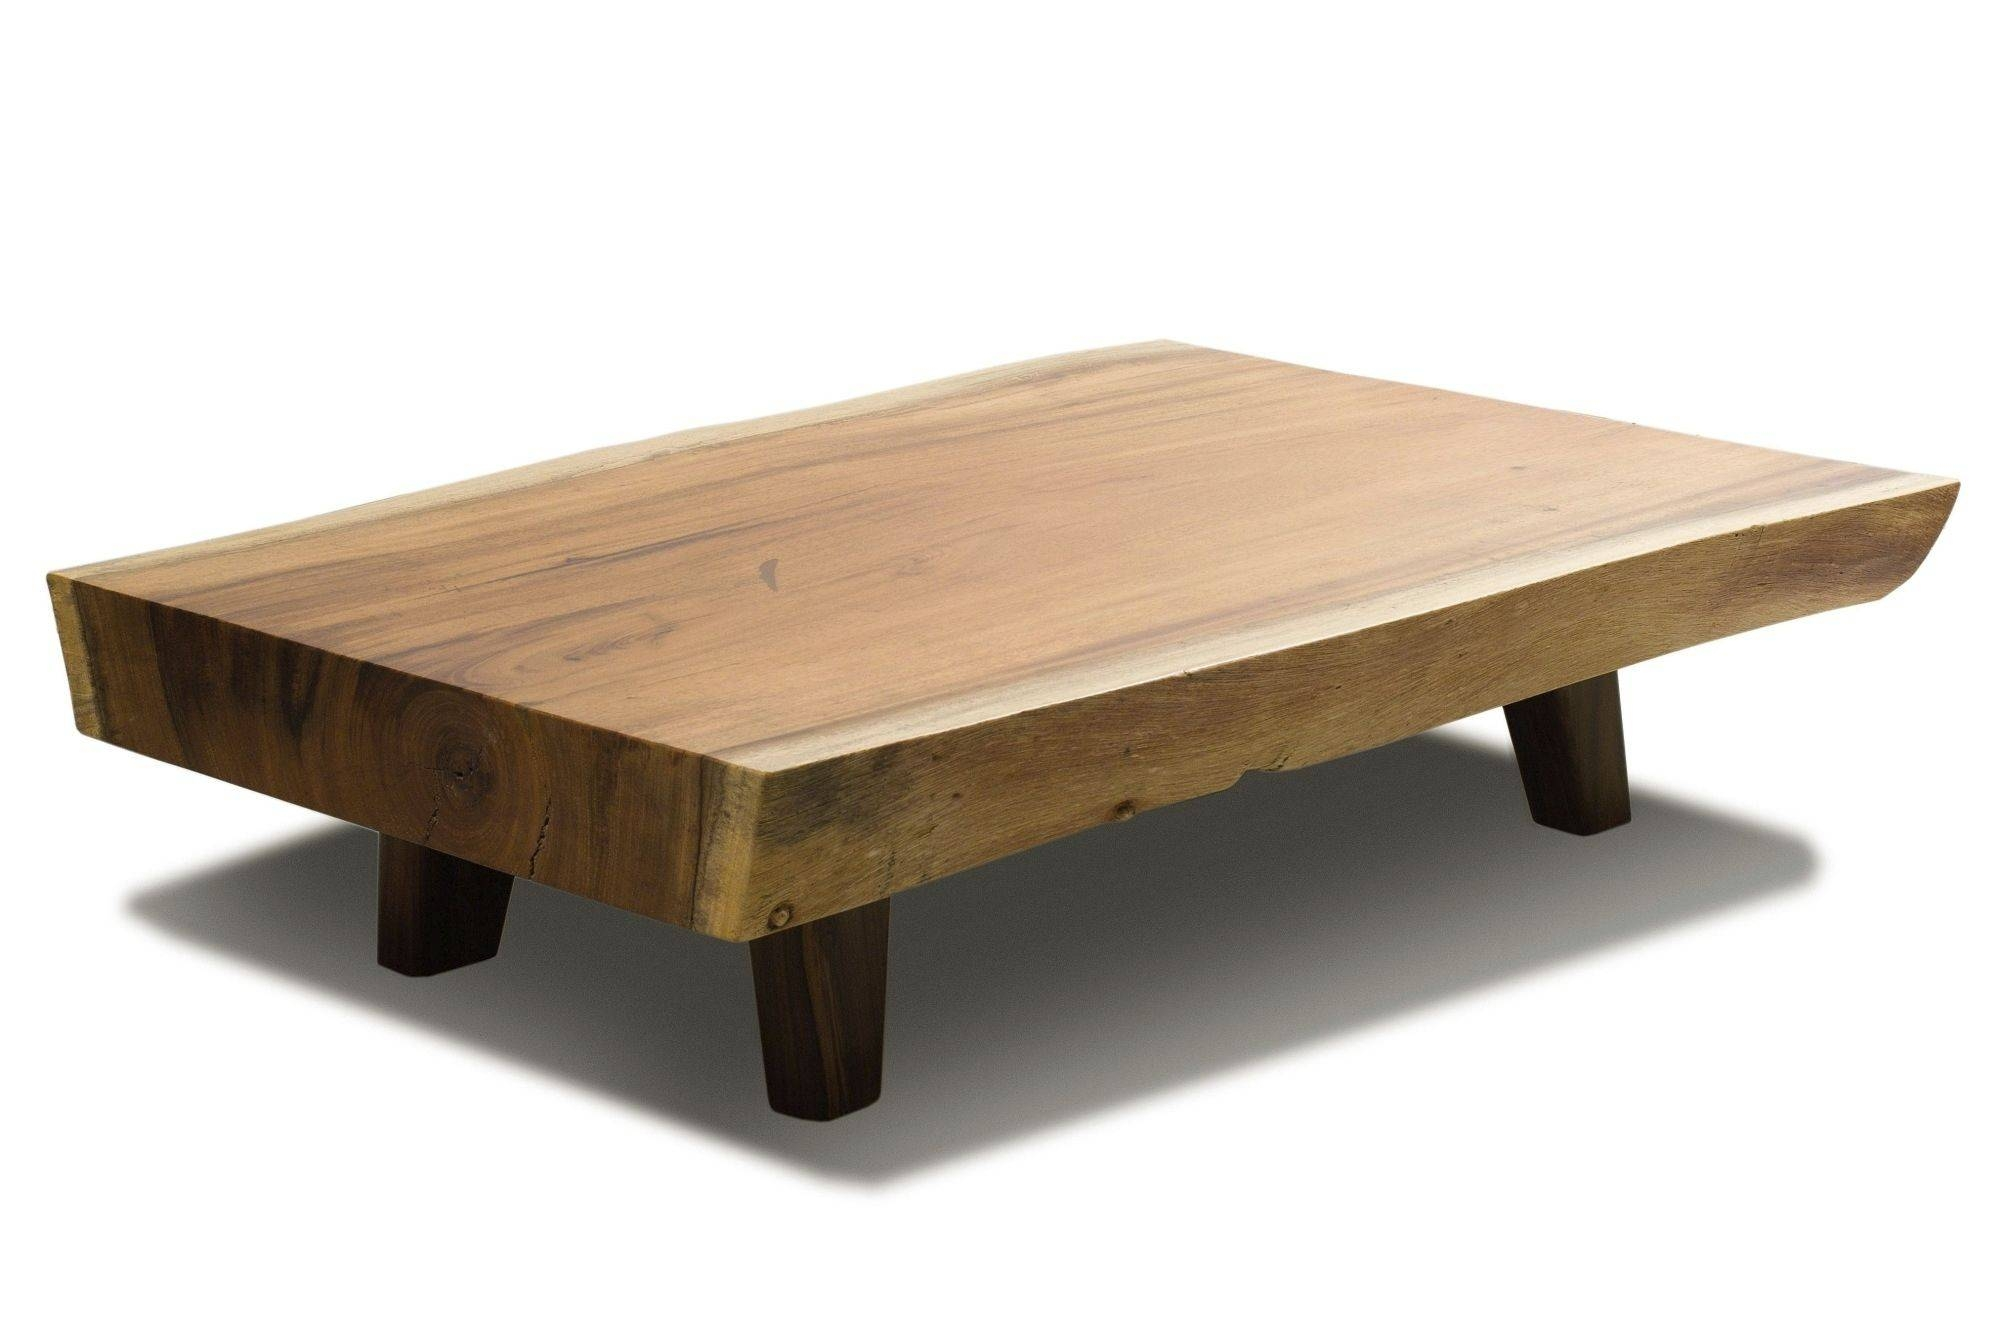 High Quality Natural Wood Coffee Table To Set In Rustic Farmhouse for High Quality Coffee Tables (Image 14 of 30)